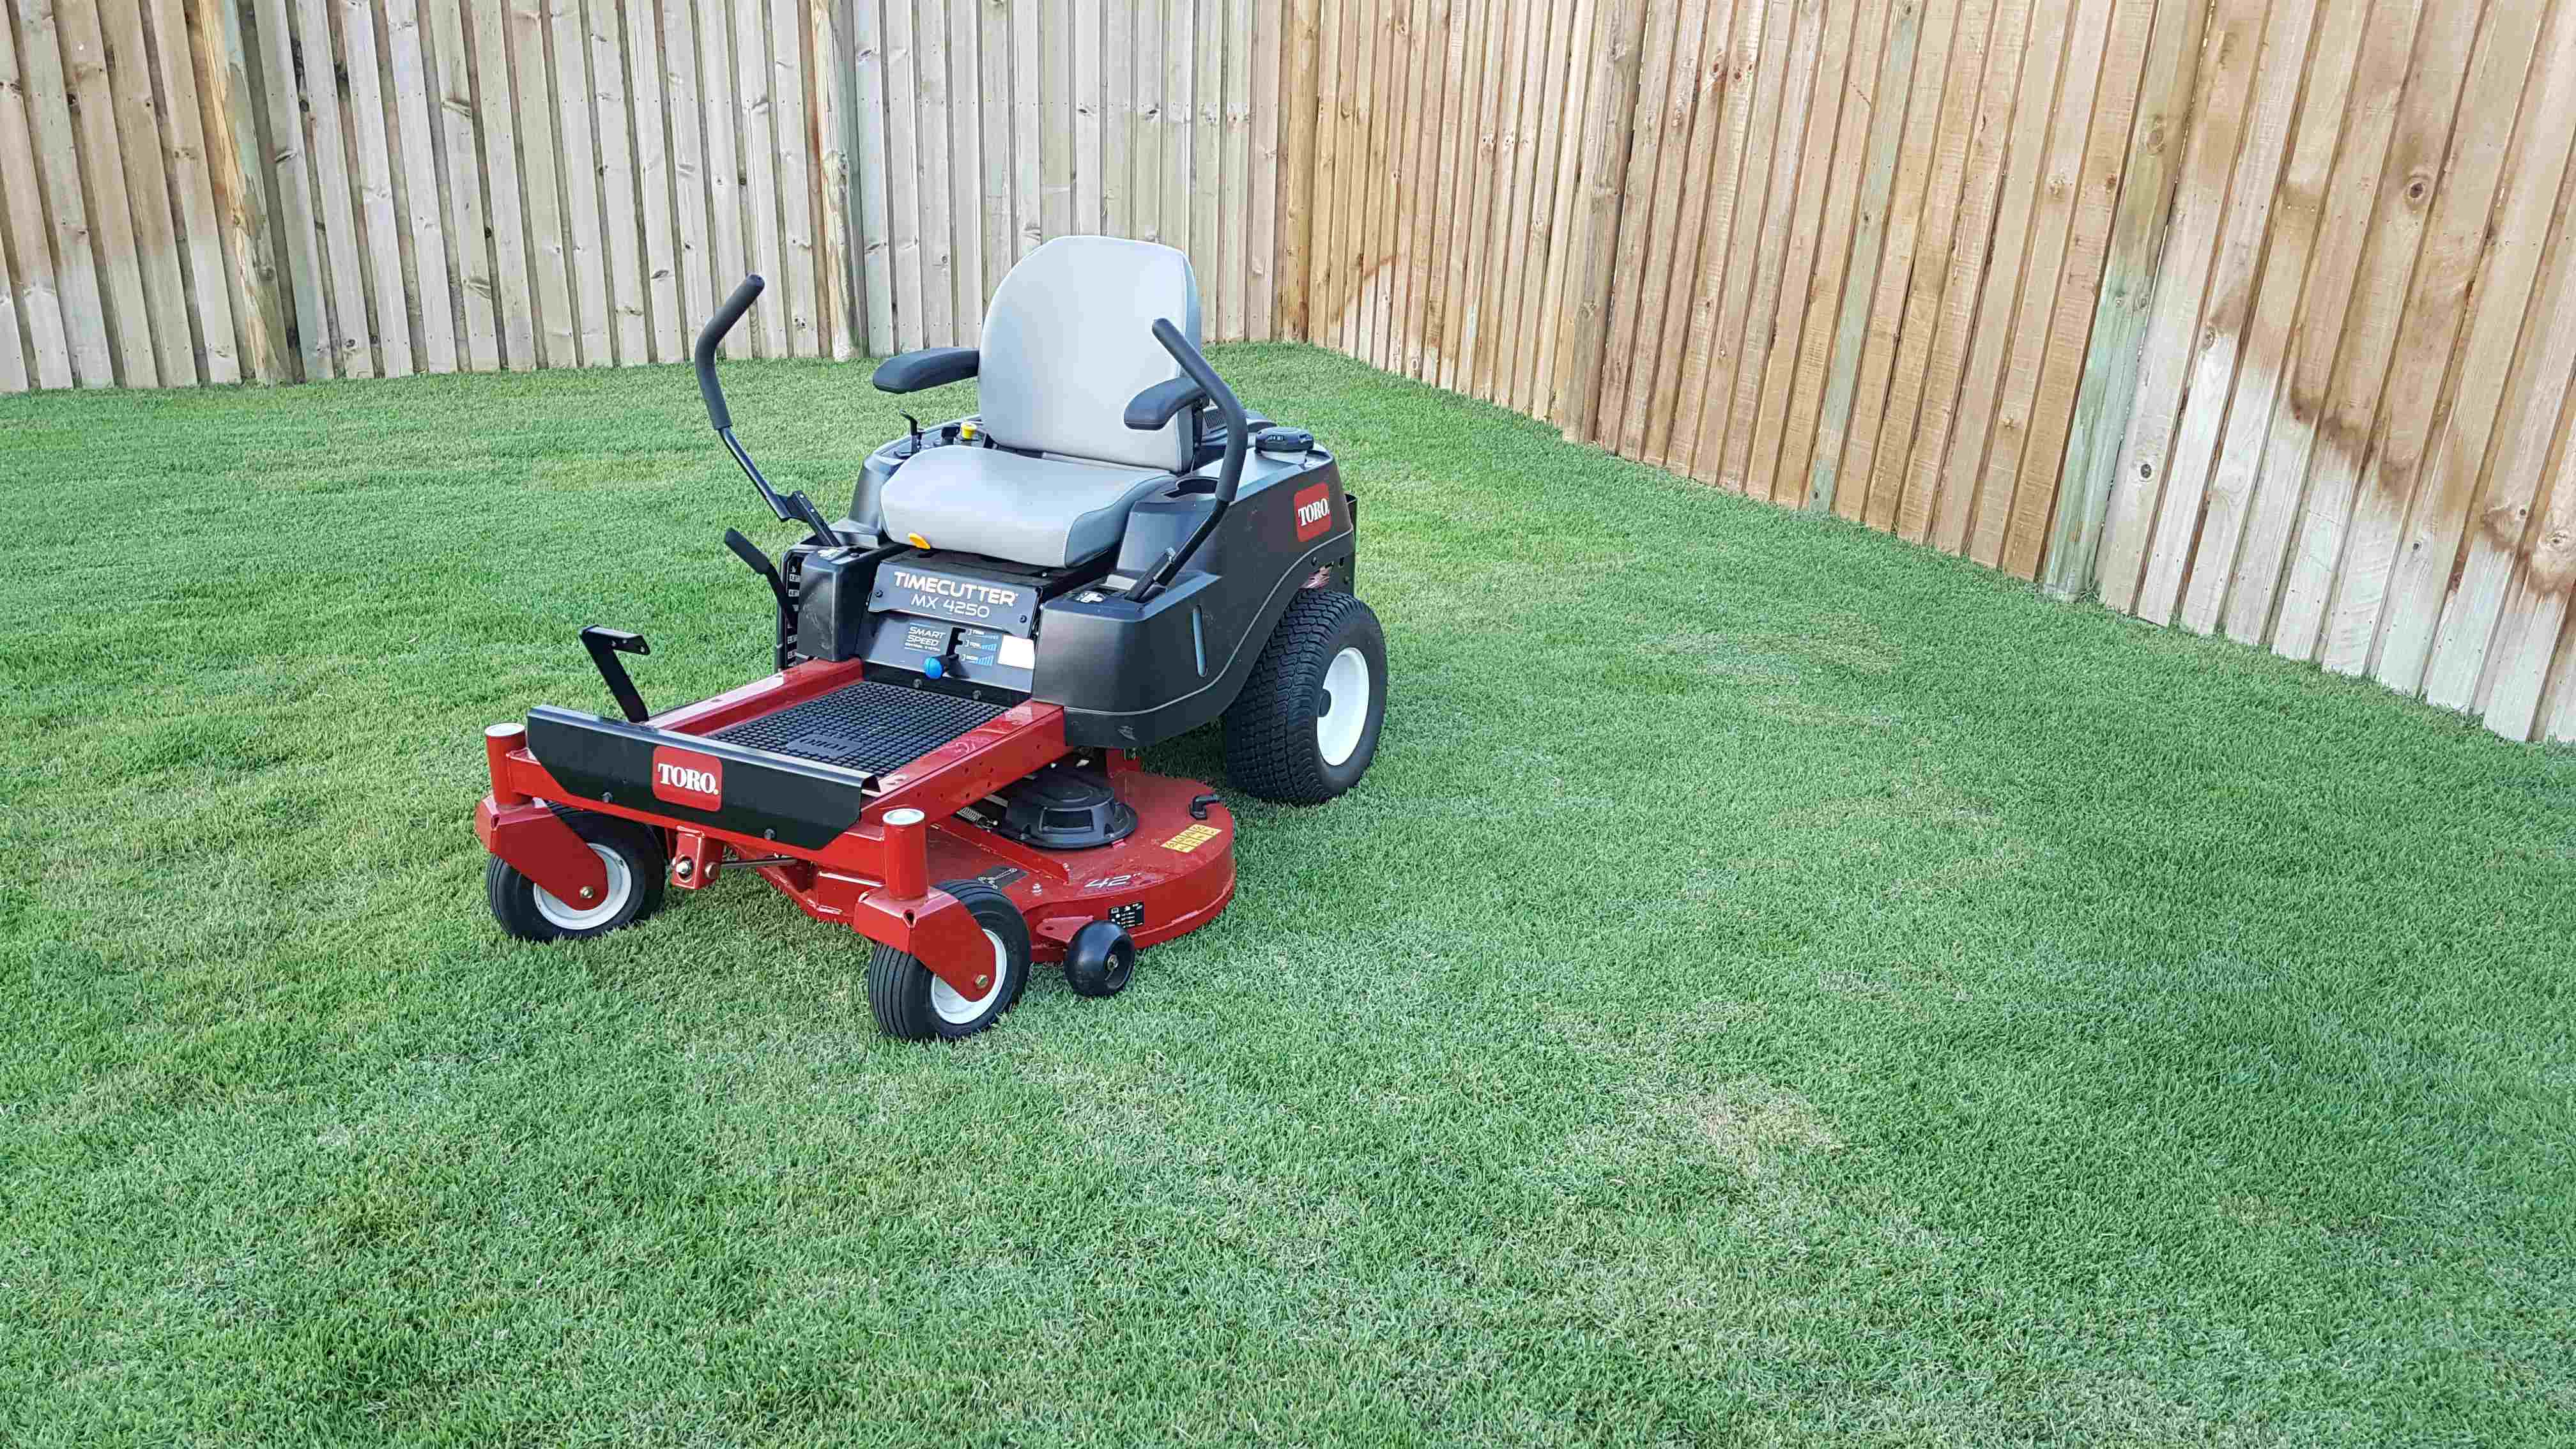 Stay Green Lawn Care - 0 Turn Mowers (1)